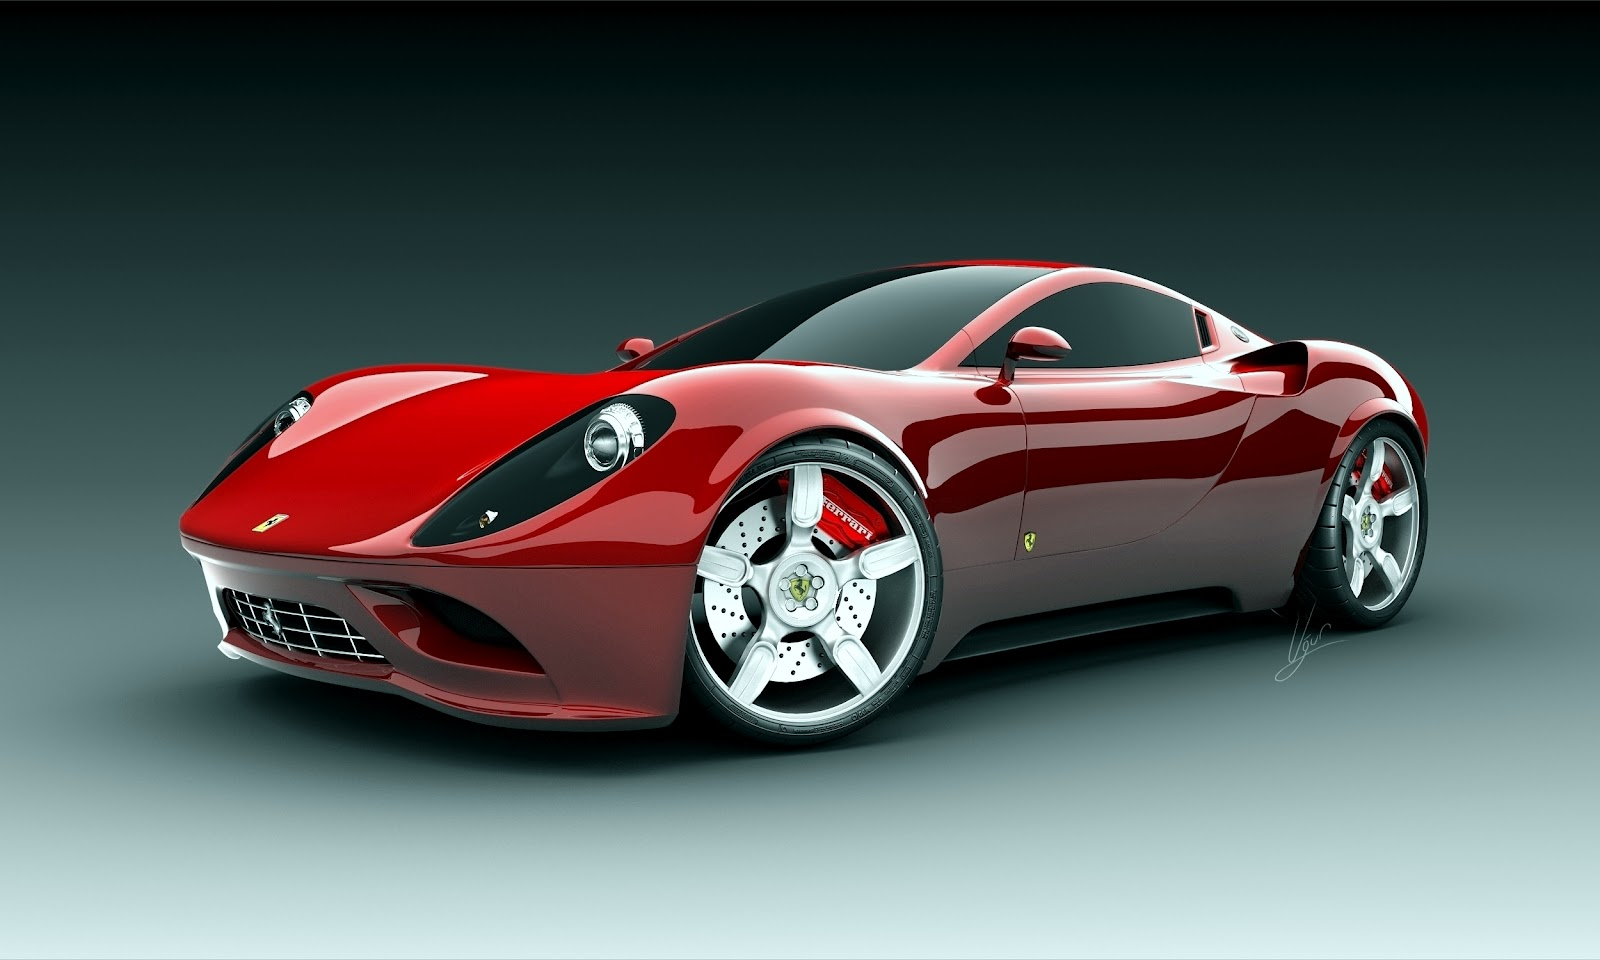 Cool Sports Cars Ferrari: The Best Sports Car